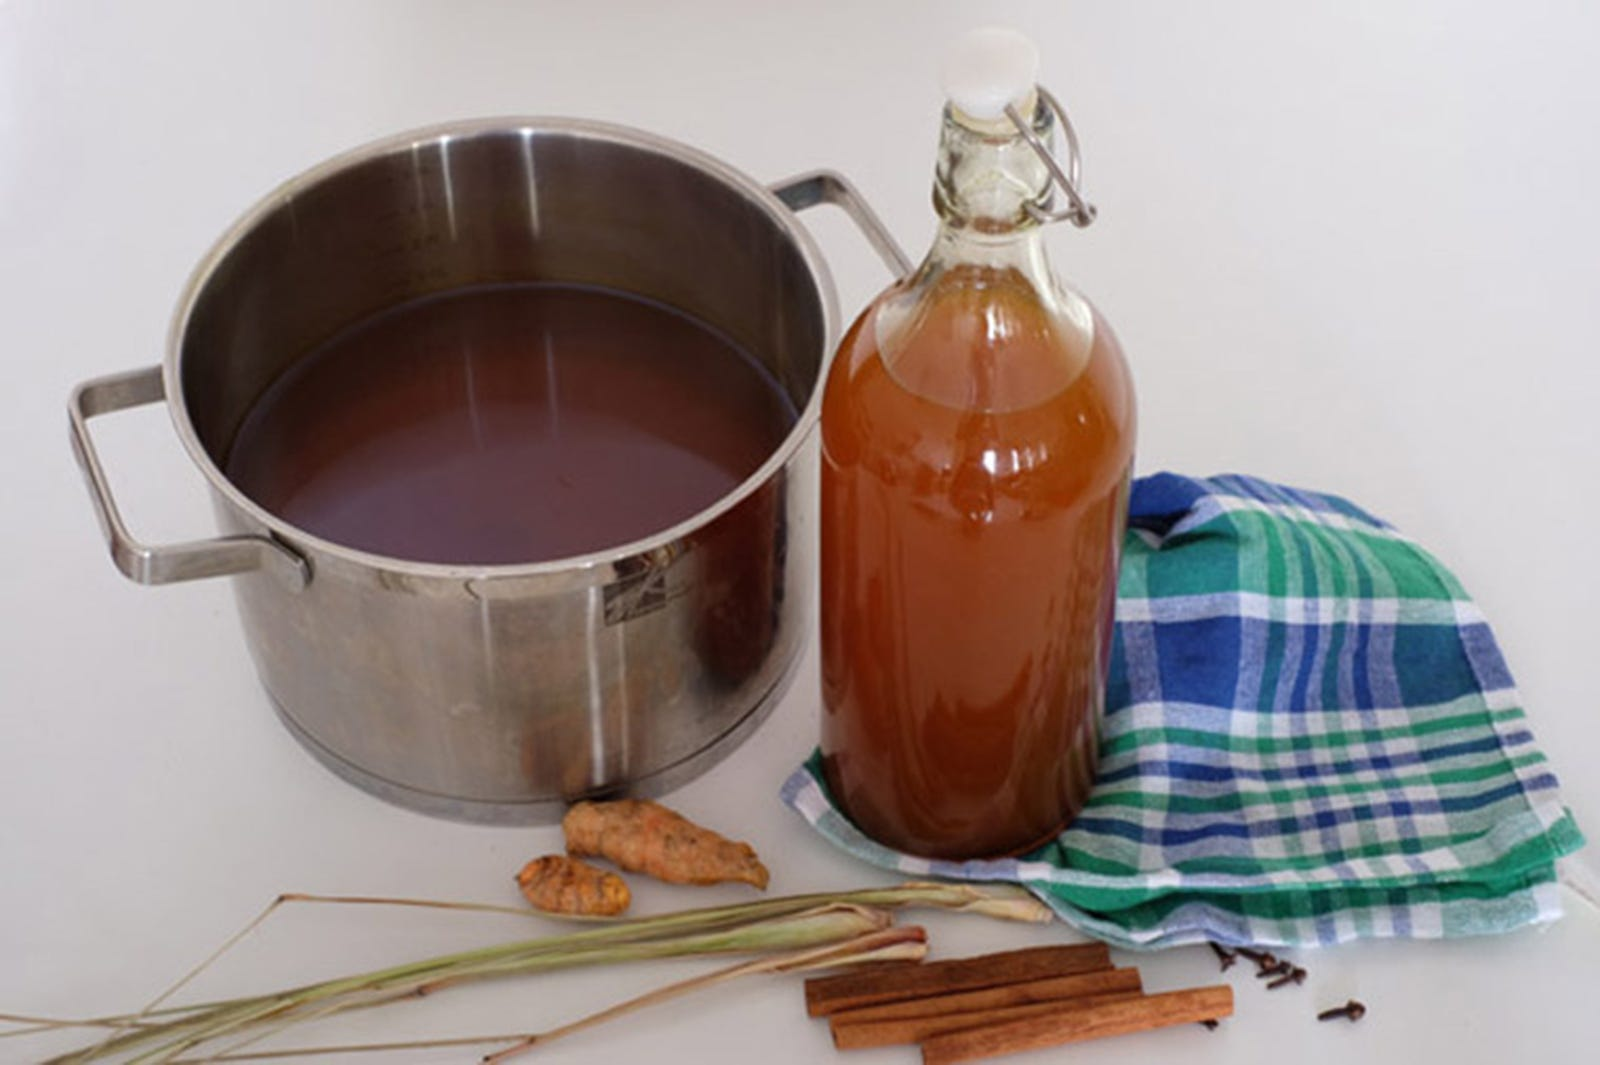 A big pot with tamarind juice next to a bottle with the same drink, standing over a blue checkered tablecloth, with bits of ginger, lemongrass, and cinnamon sticks next to it.